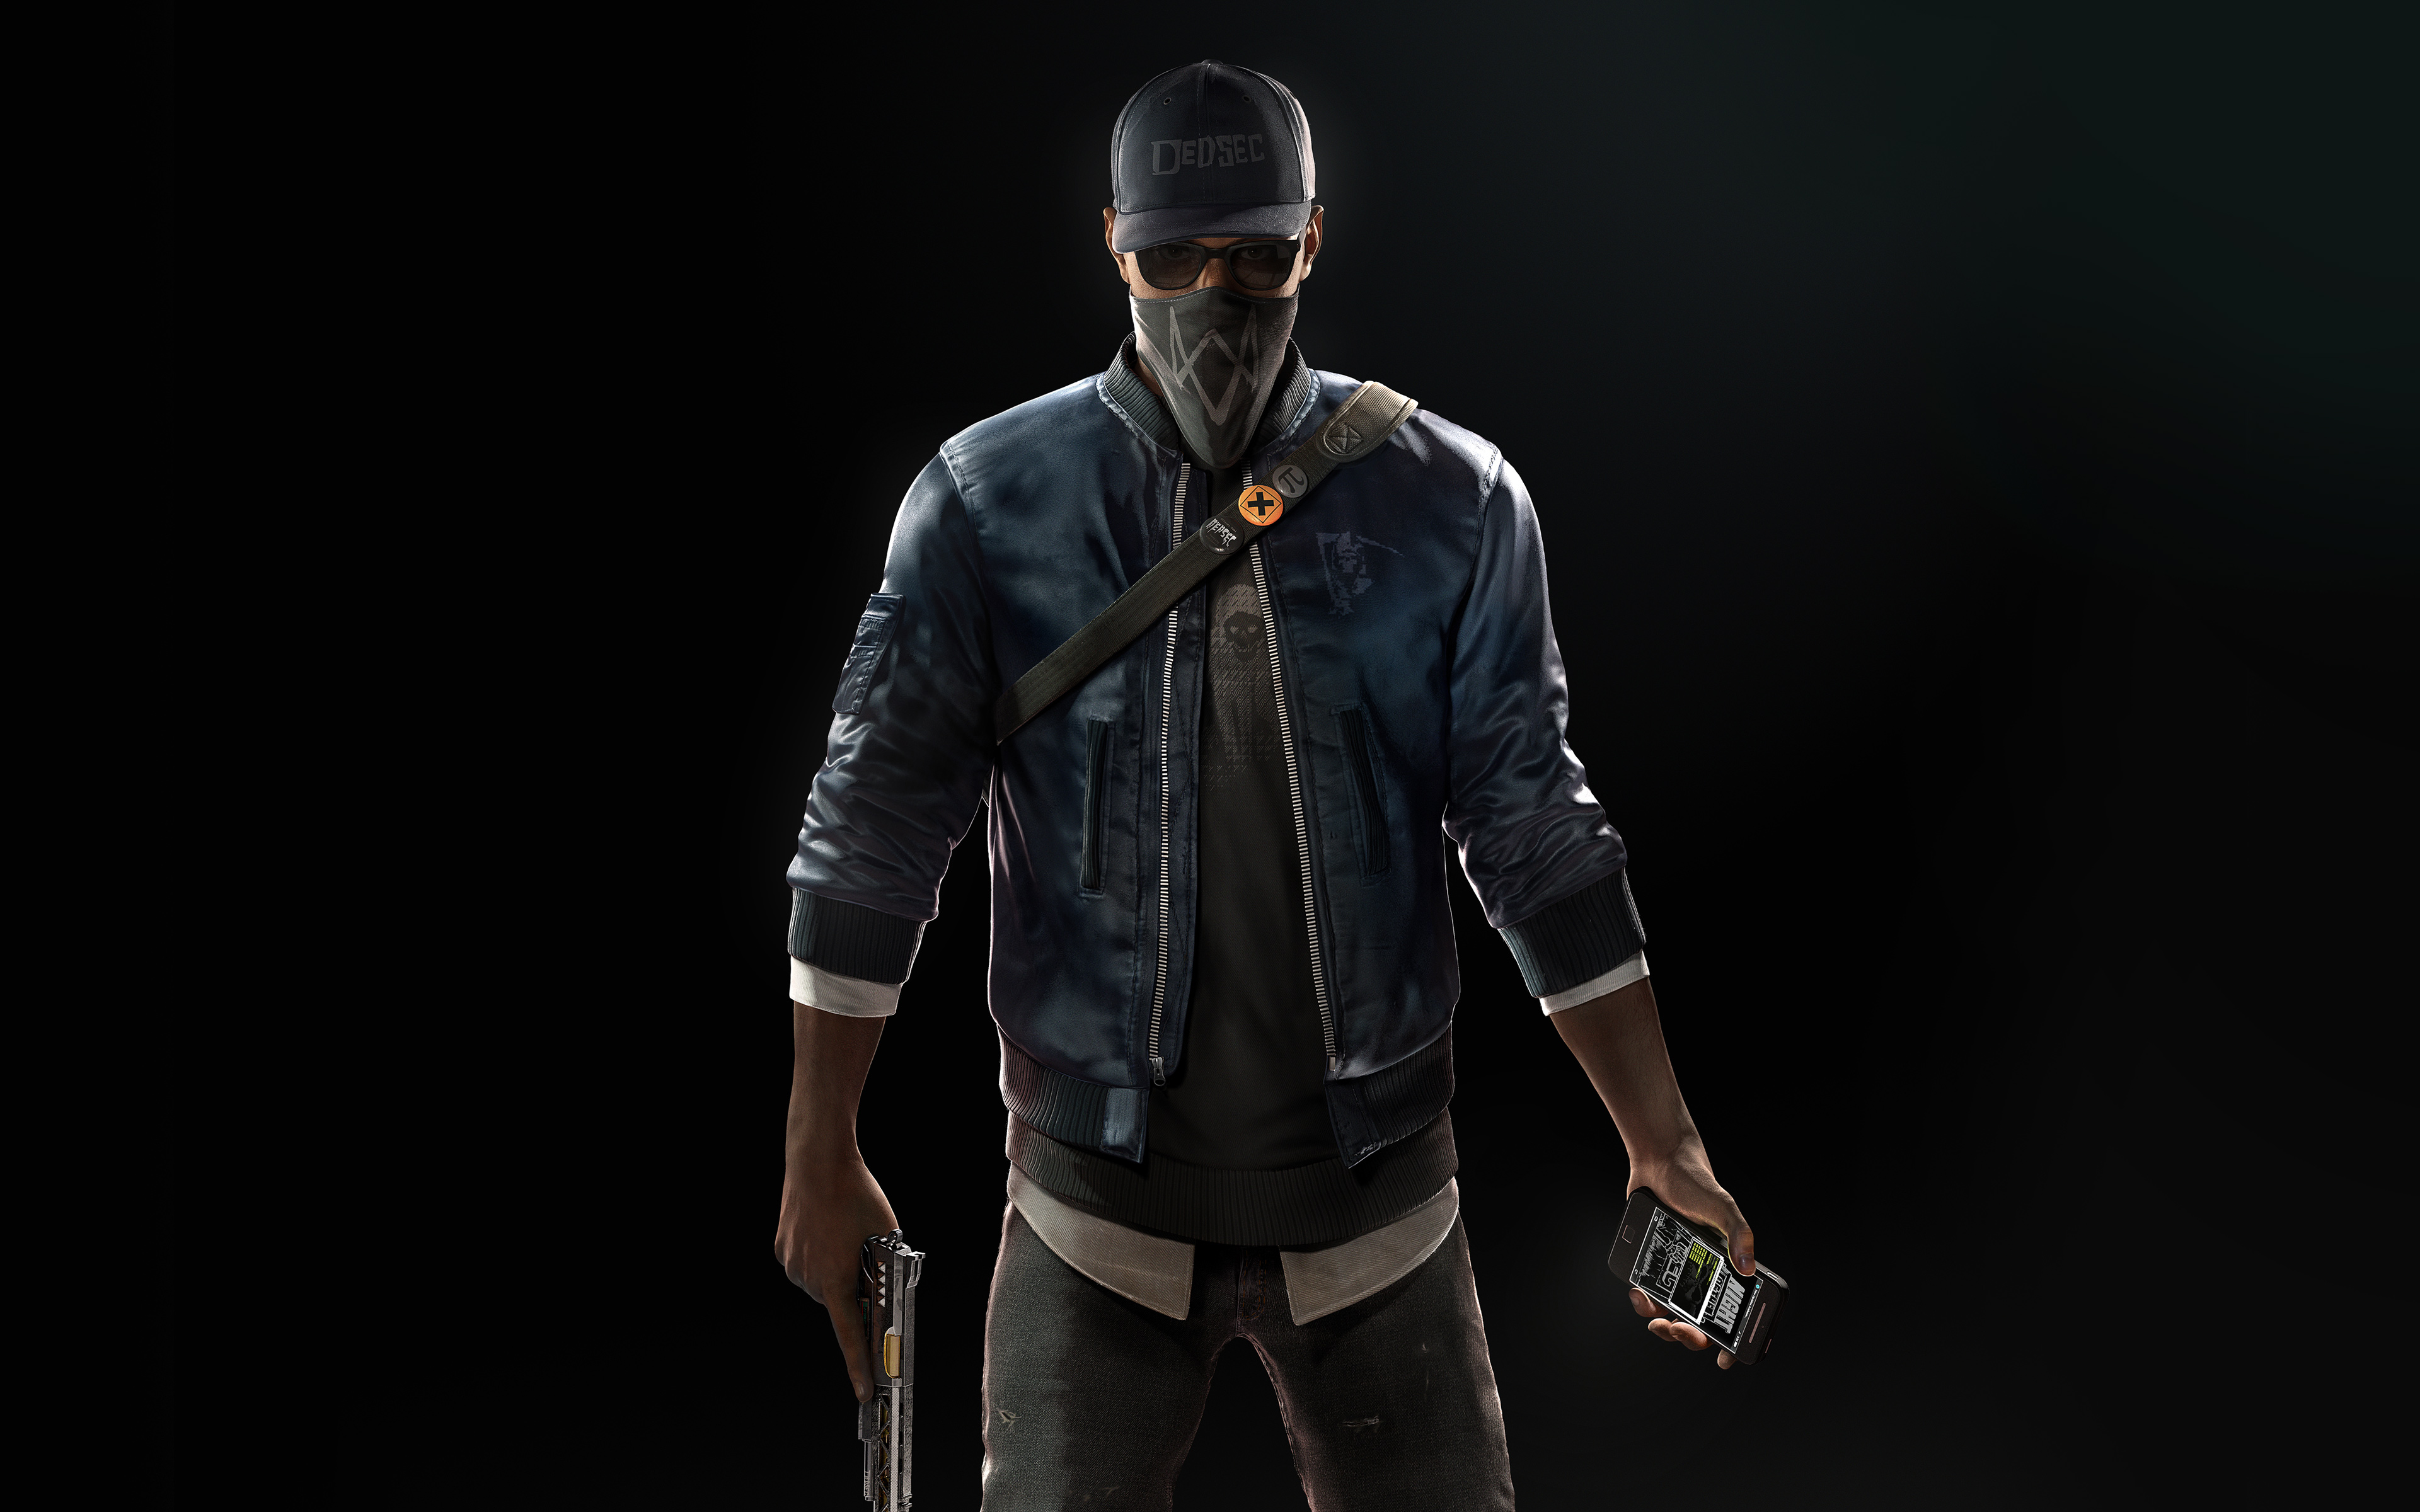 watch dogs 2 wallpaper background 62004